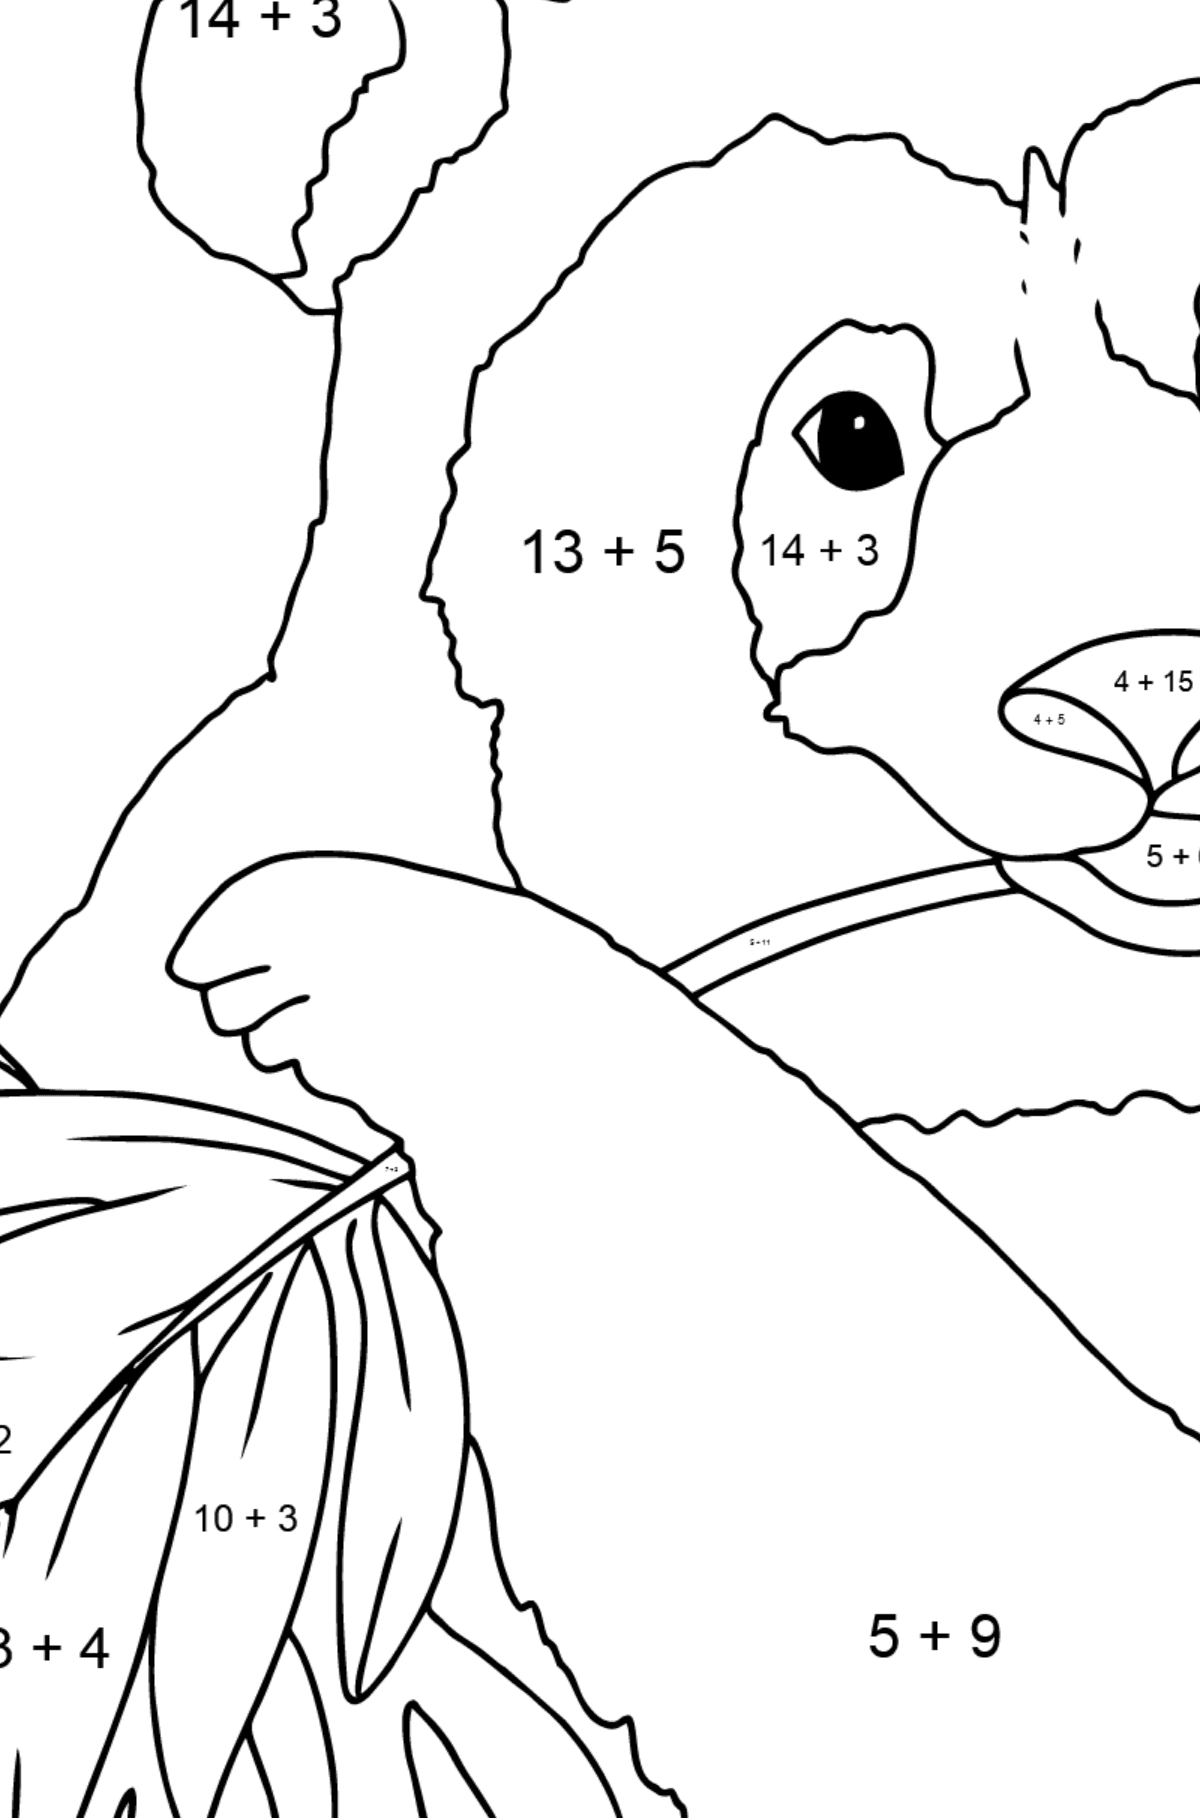 Coloring Page - A Panda is Eating Bamboo Leaves - Math Coloring - Addition for Children